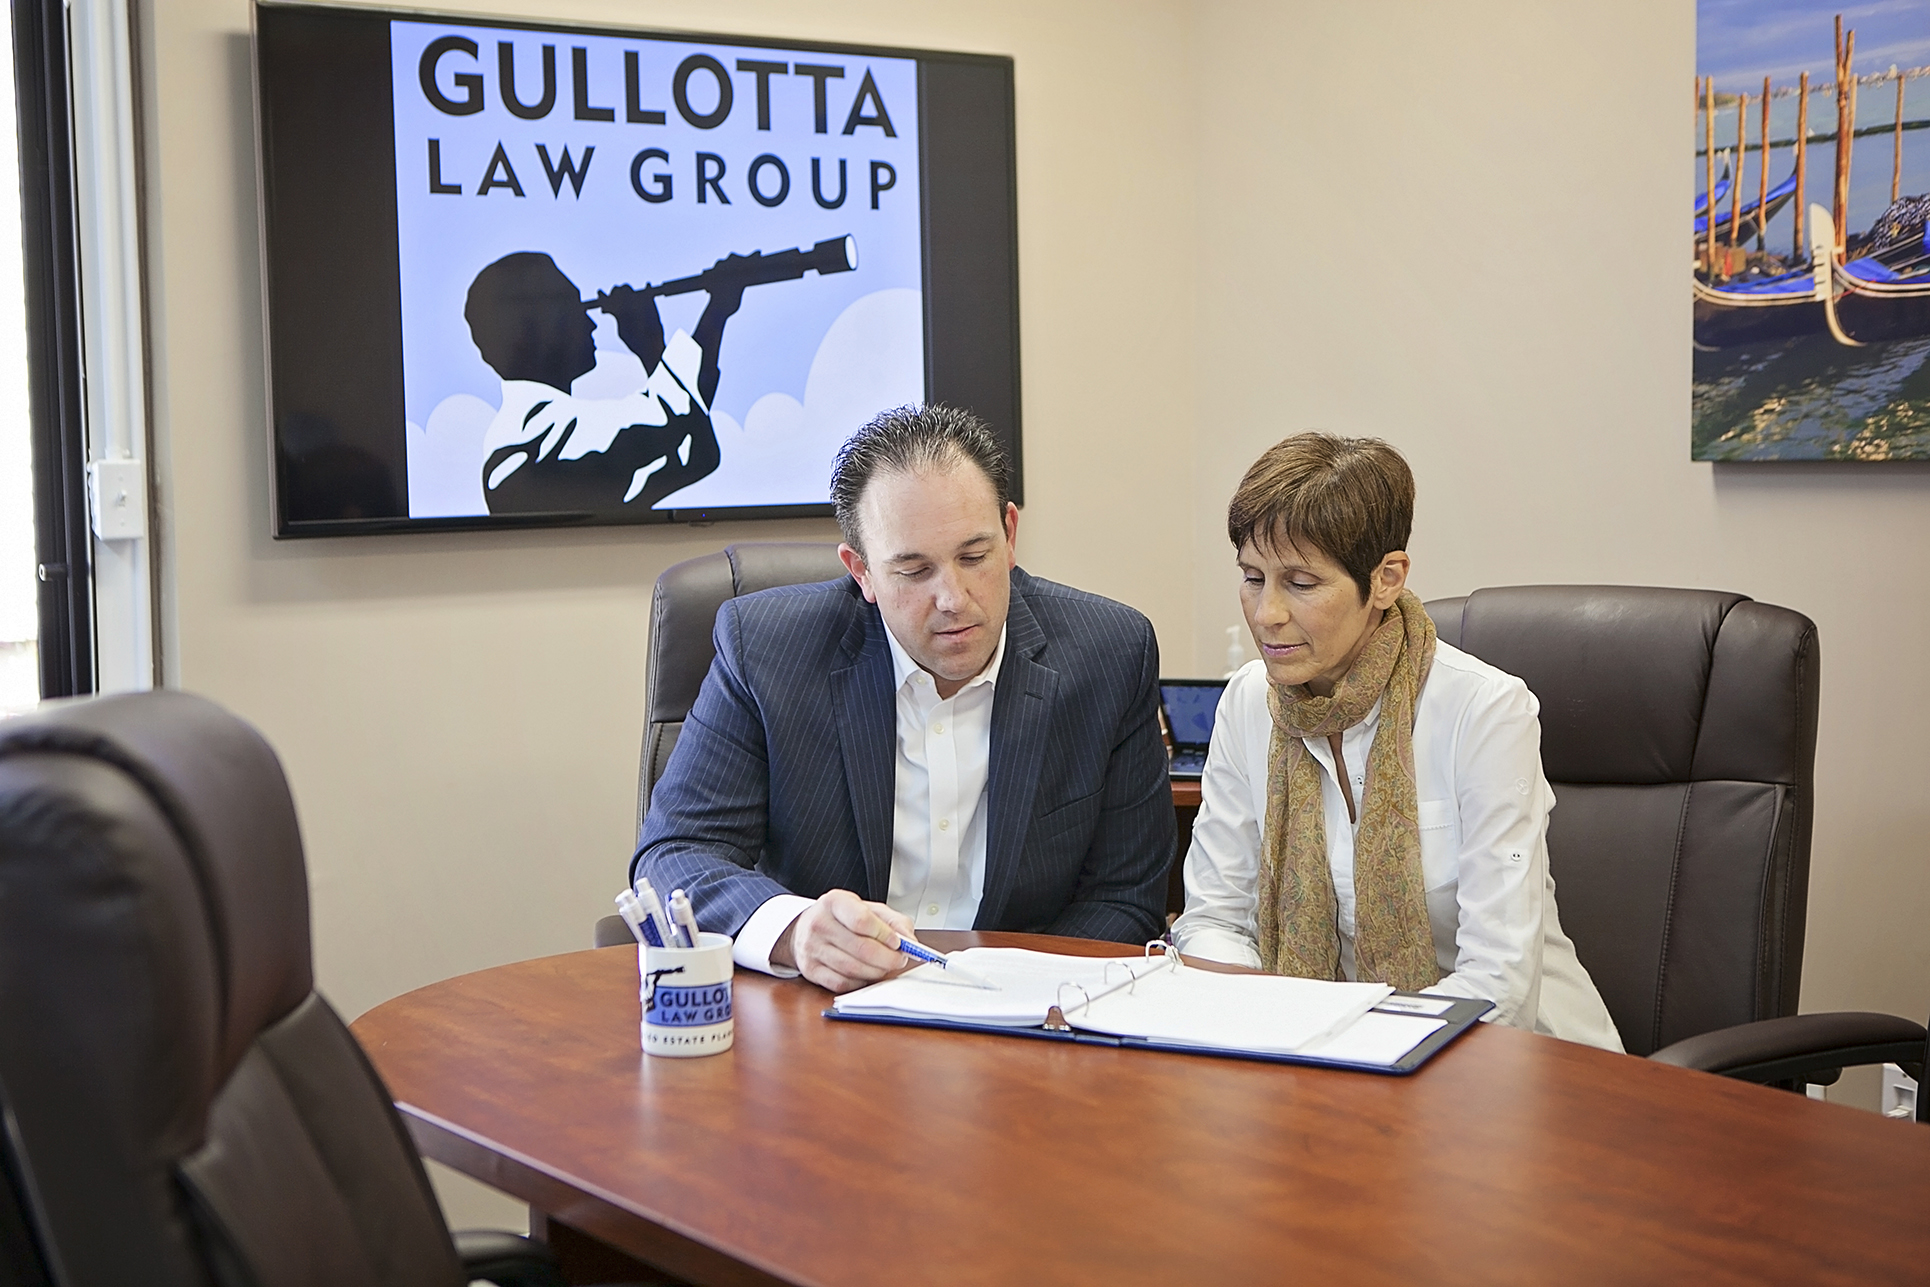 Meeting with a Woman in the Gullotta Law Group Conference Room